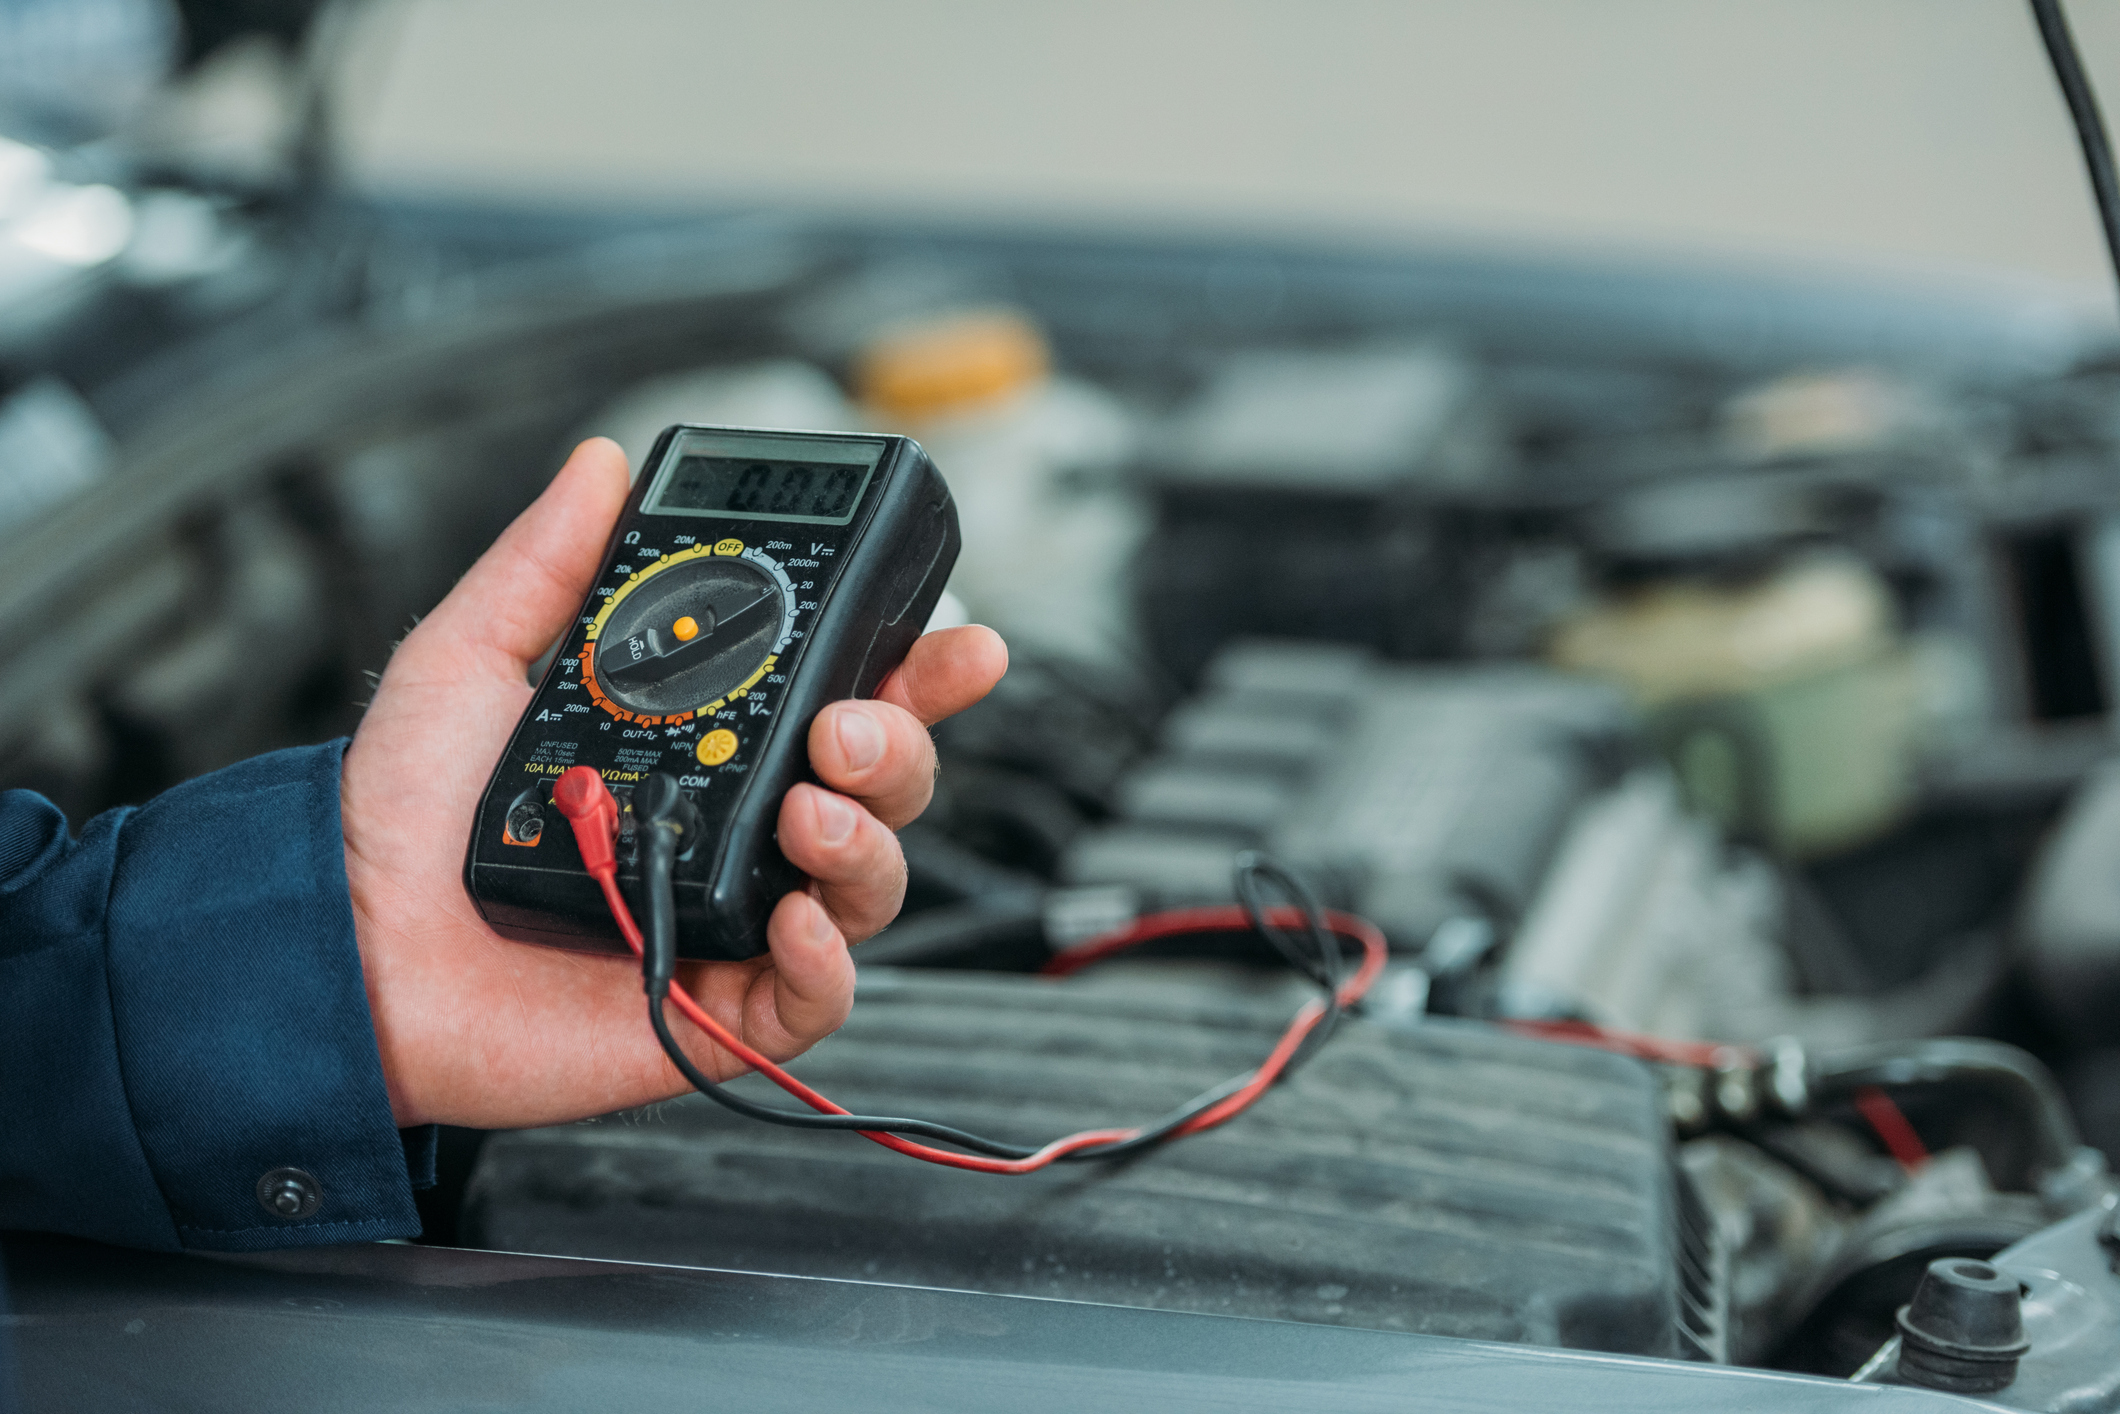 Diagnostics - We have over 20+ years of experience working on vehicles and equipment. From diagnosing to repairs, we are a one-stop shop.